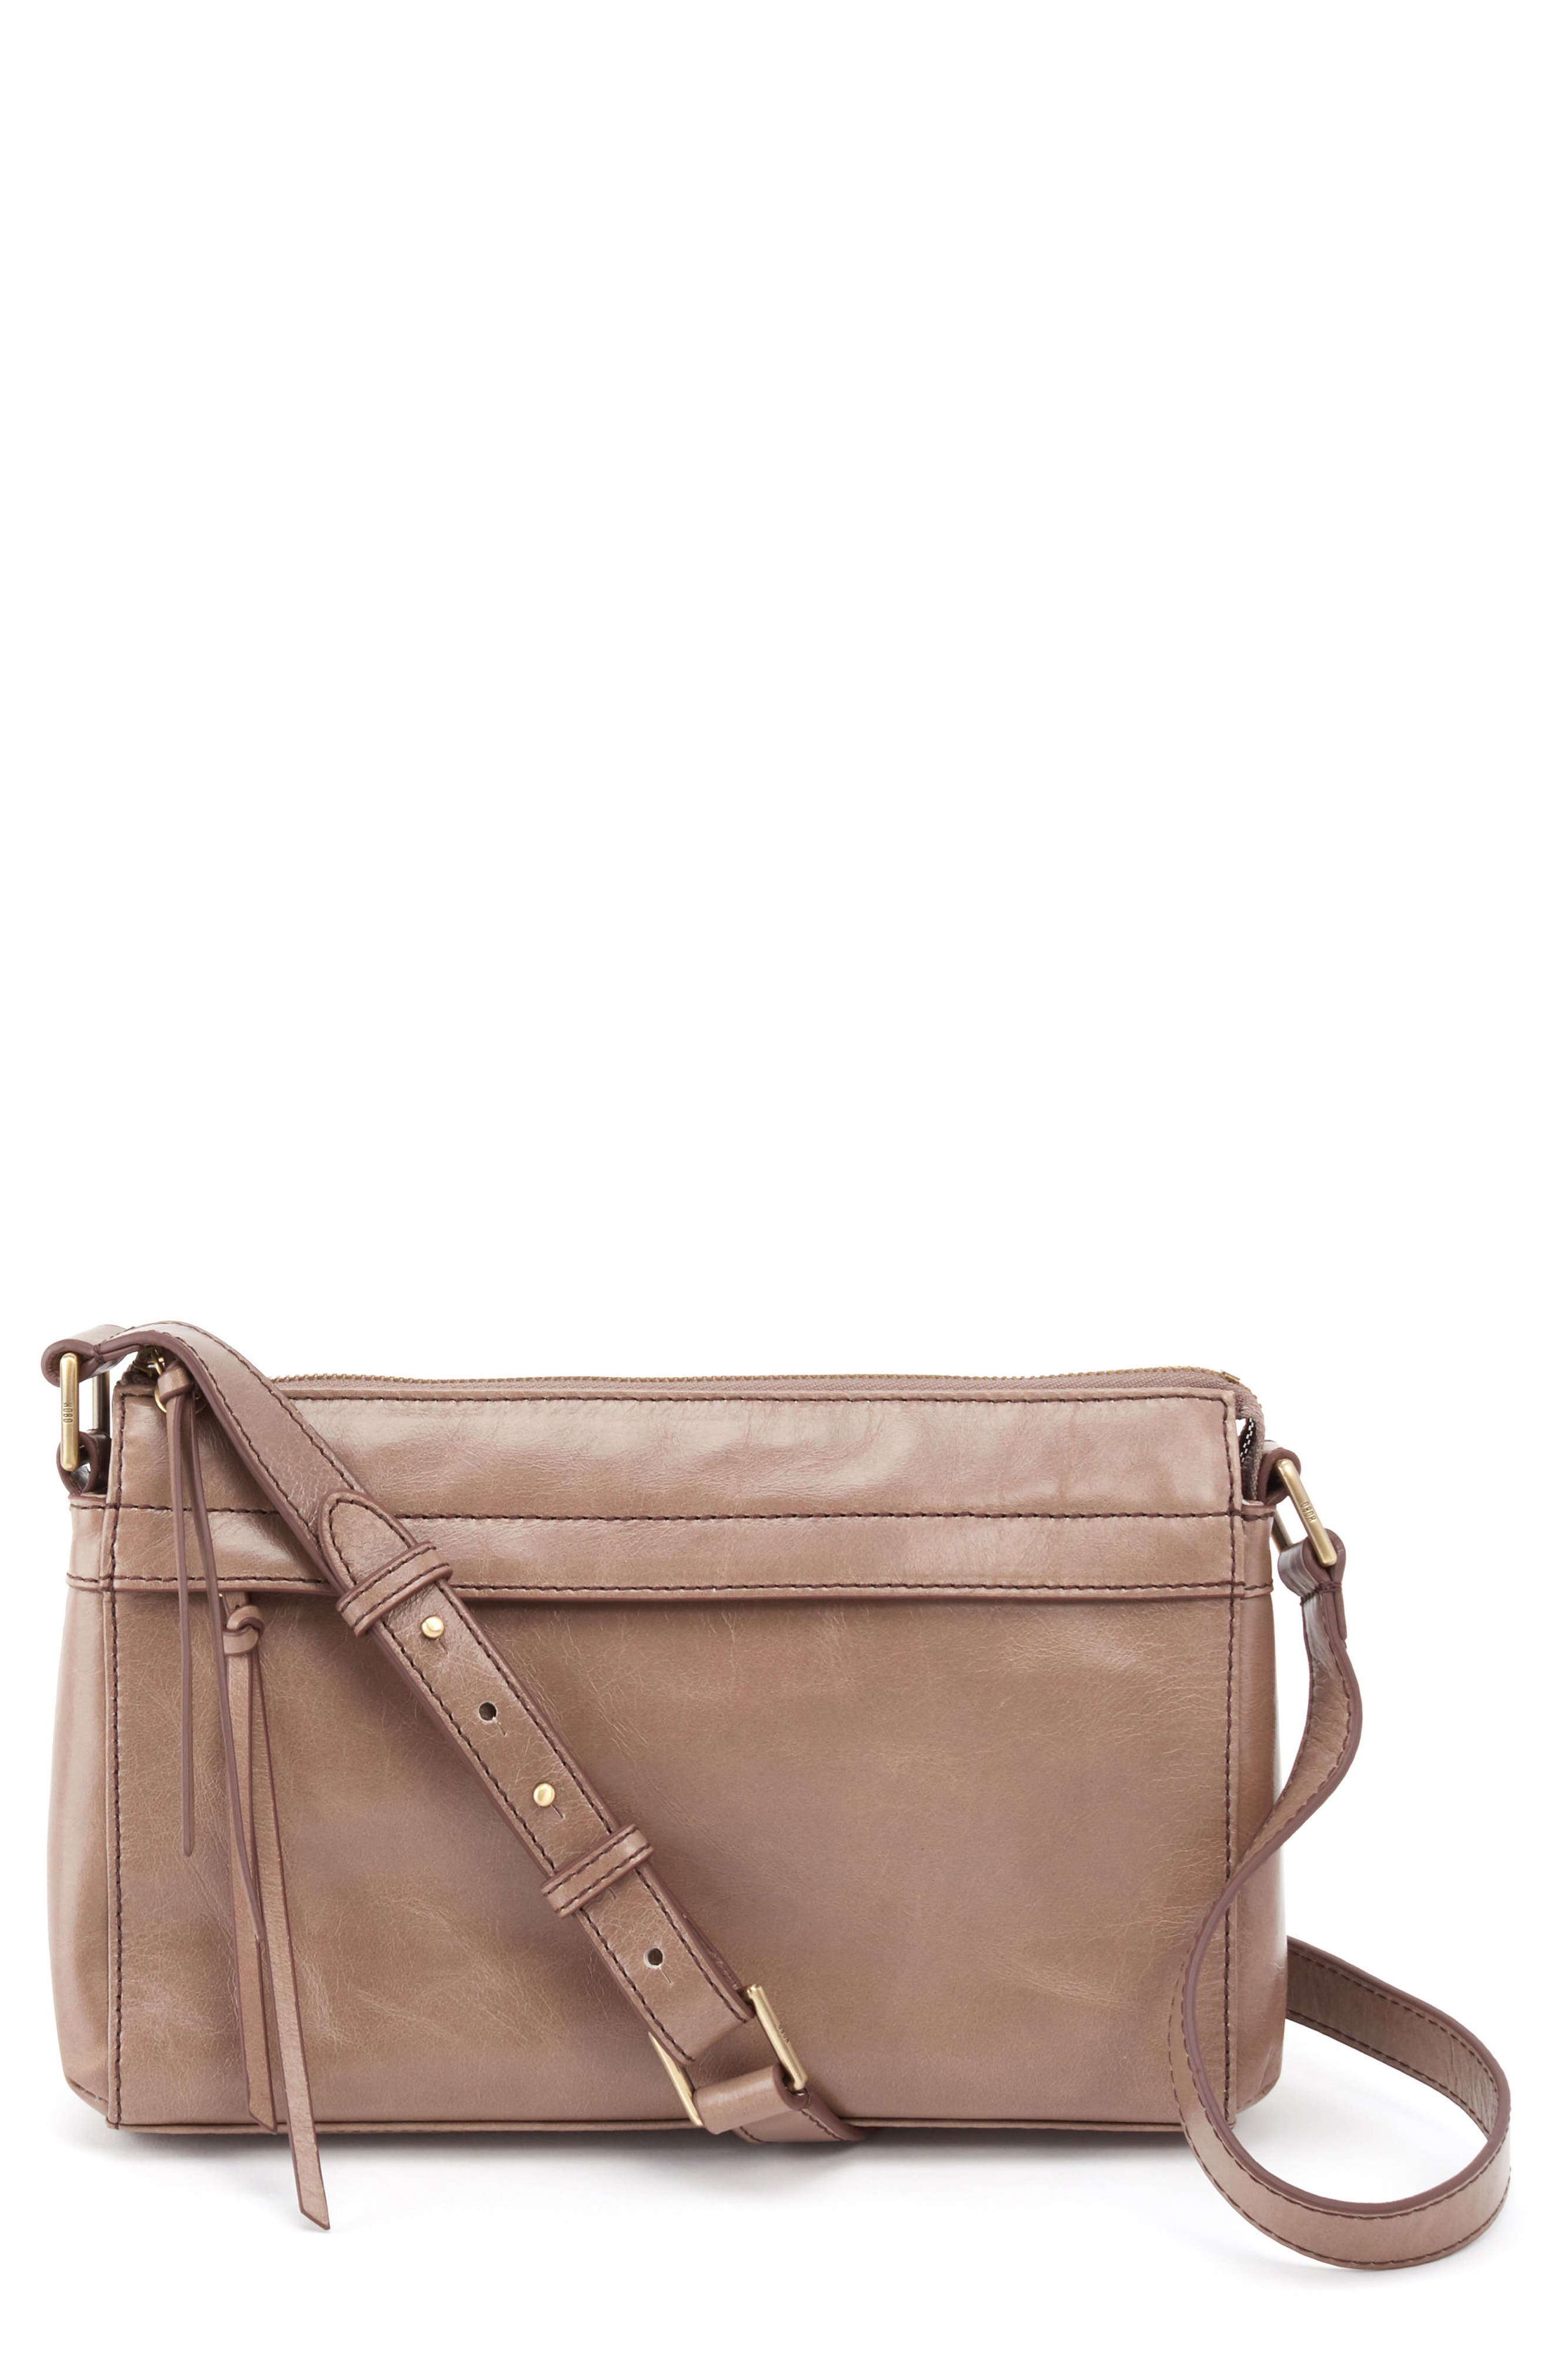 Tobey Leather Crossbody Bag,                         Main,                         color, 037